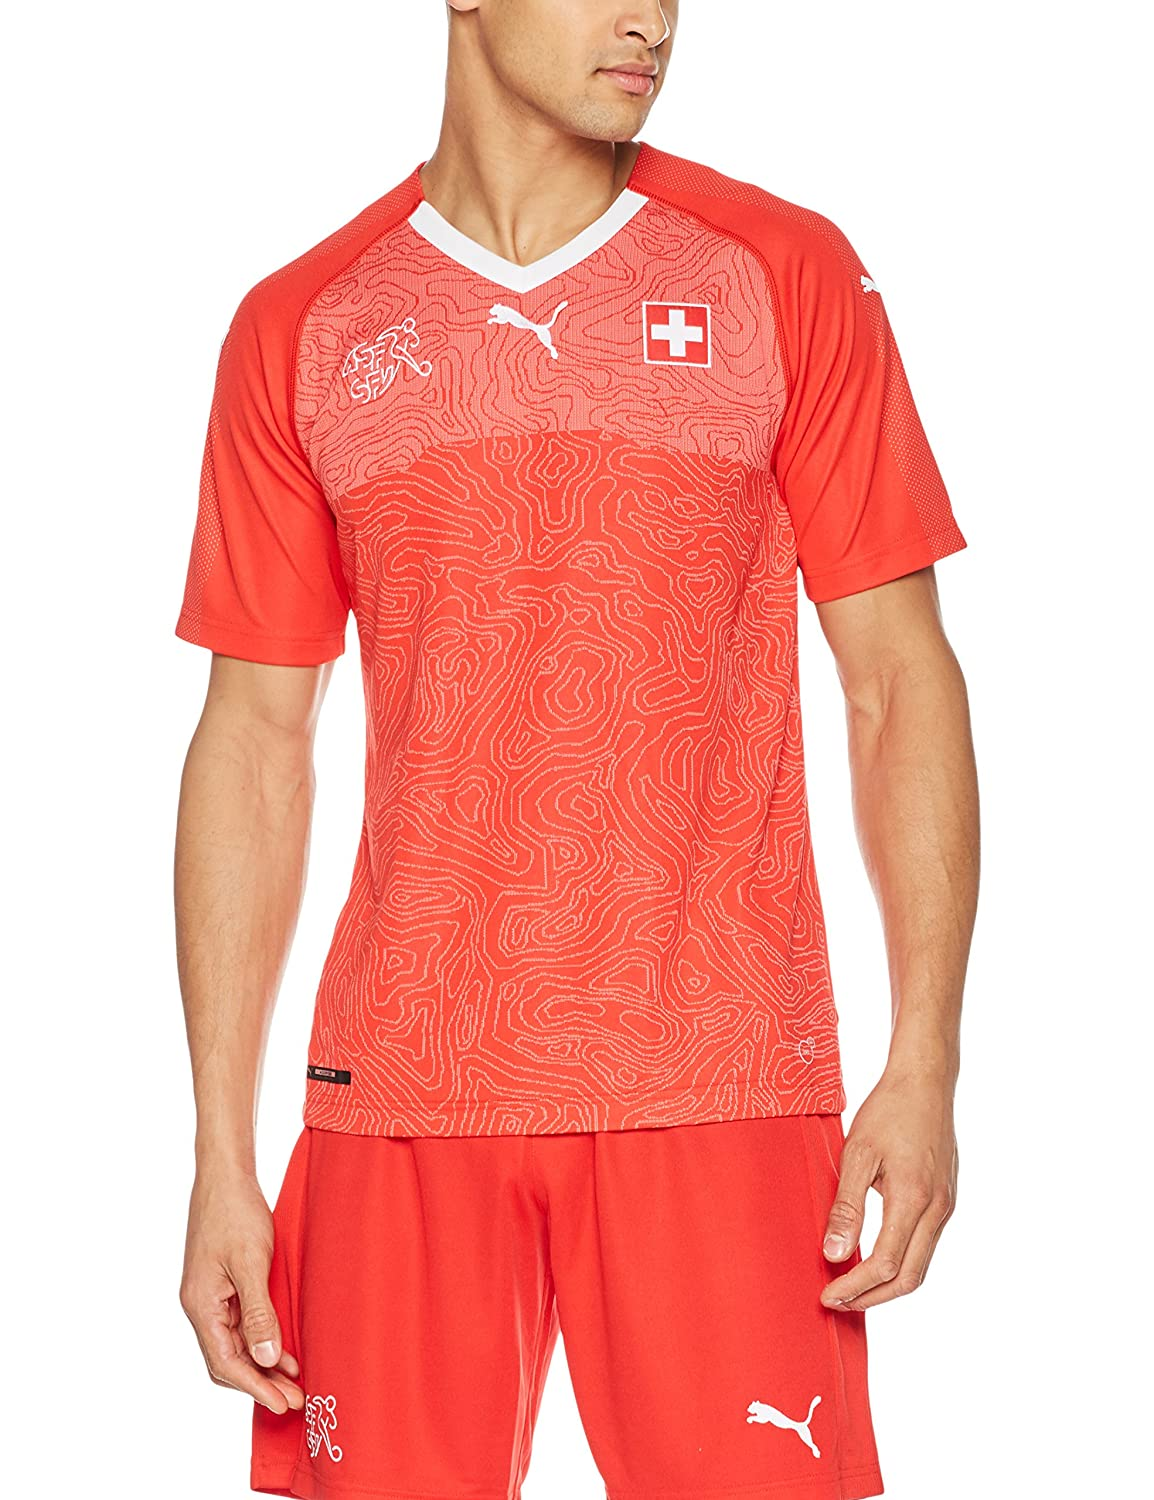 Red Large PUMA Mens Suisse Replica Jersey Athletic Shirt